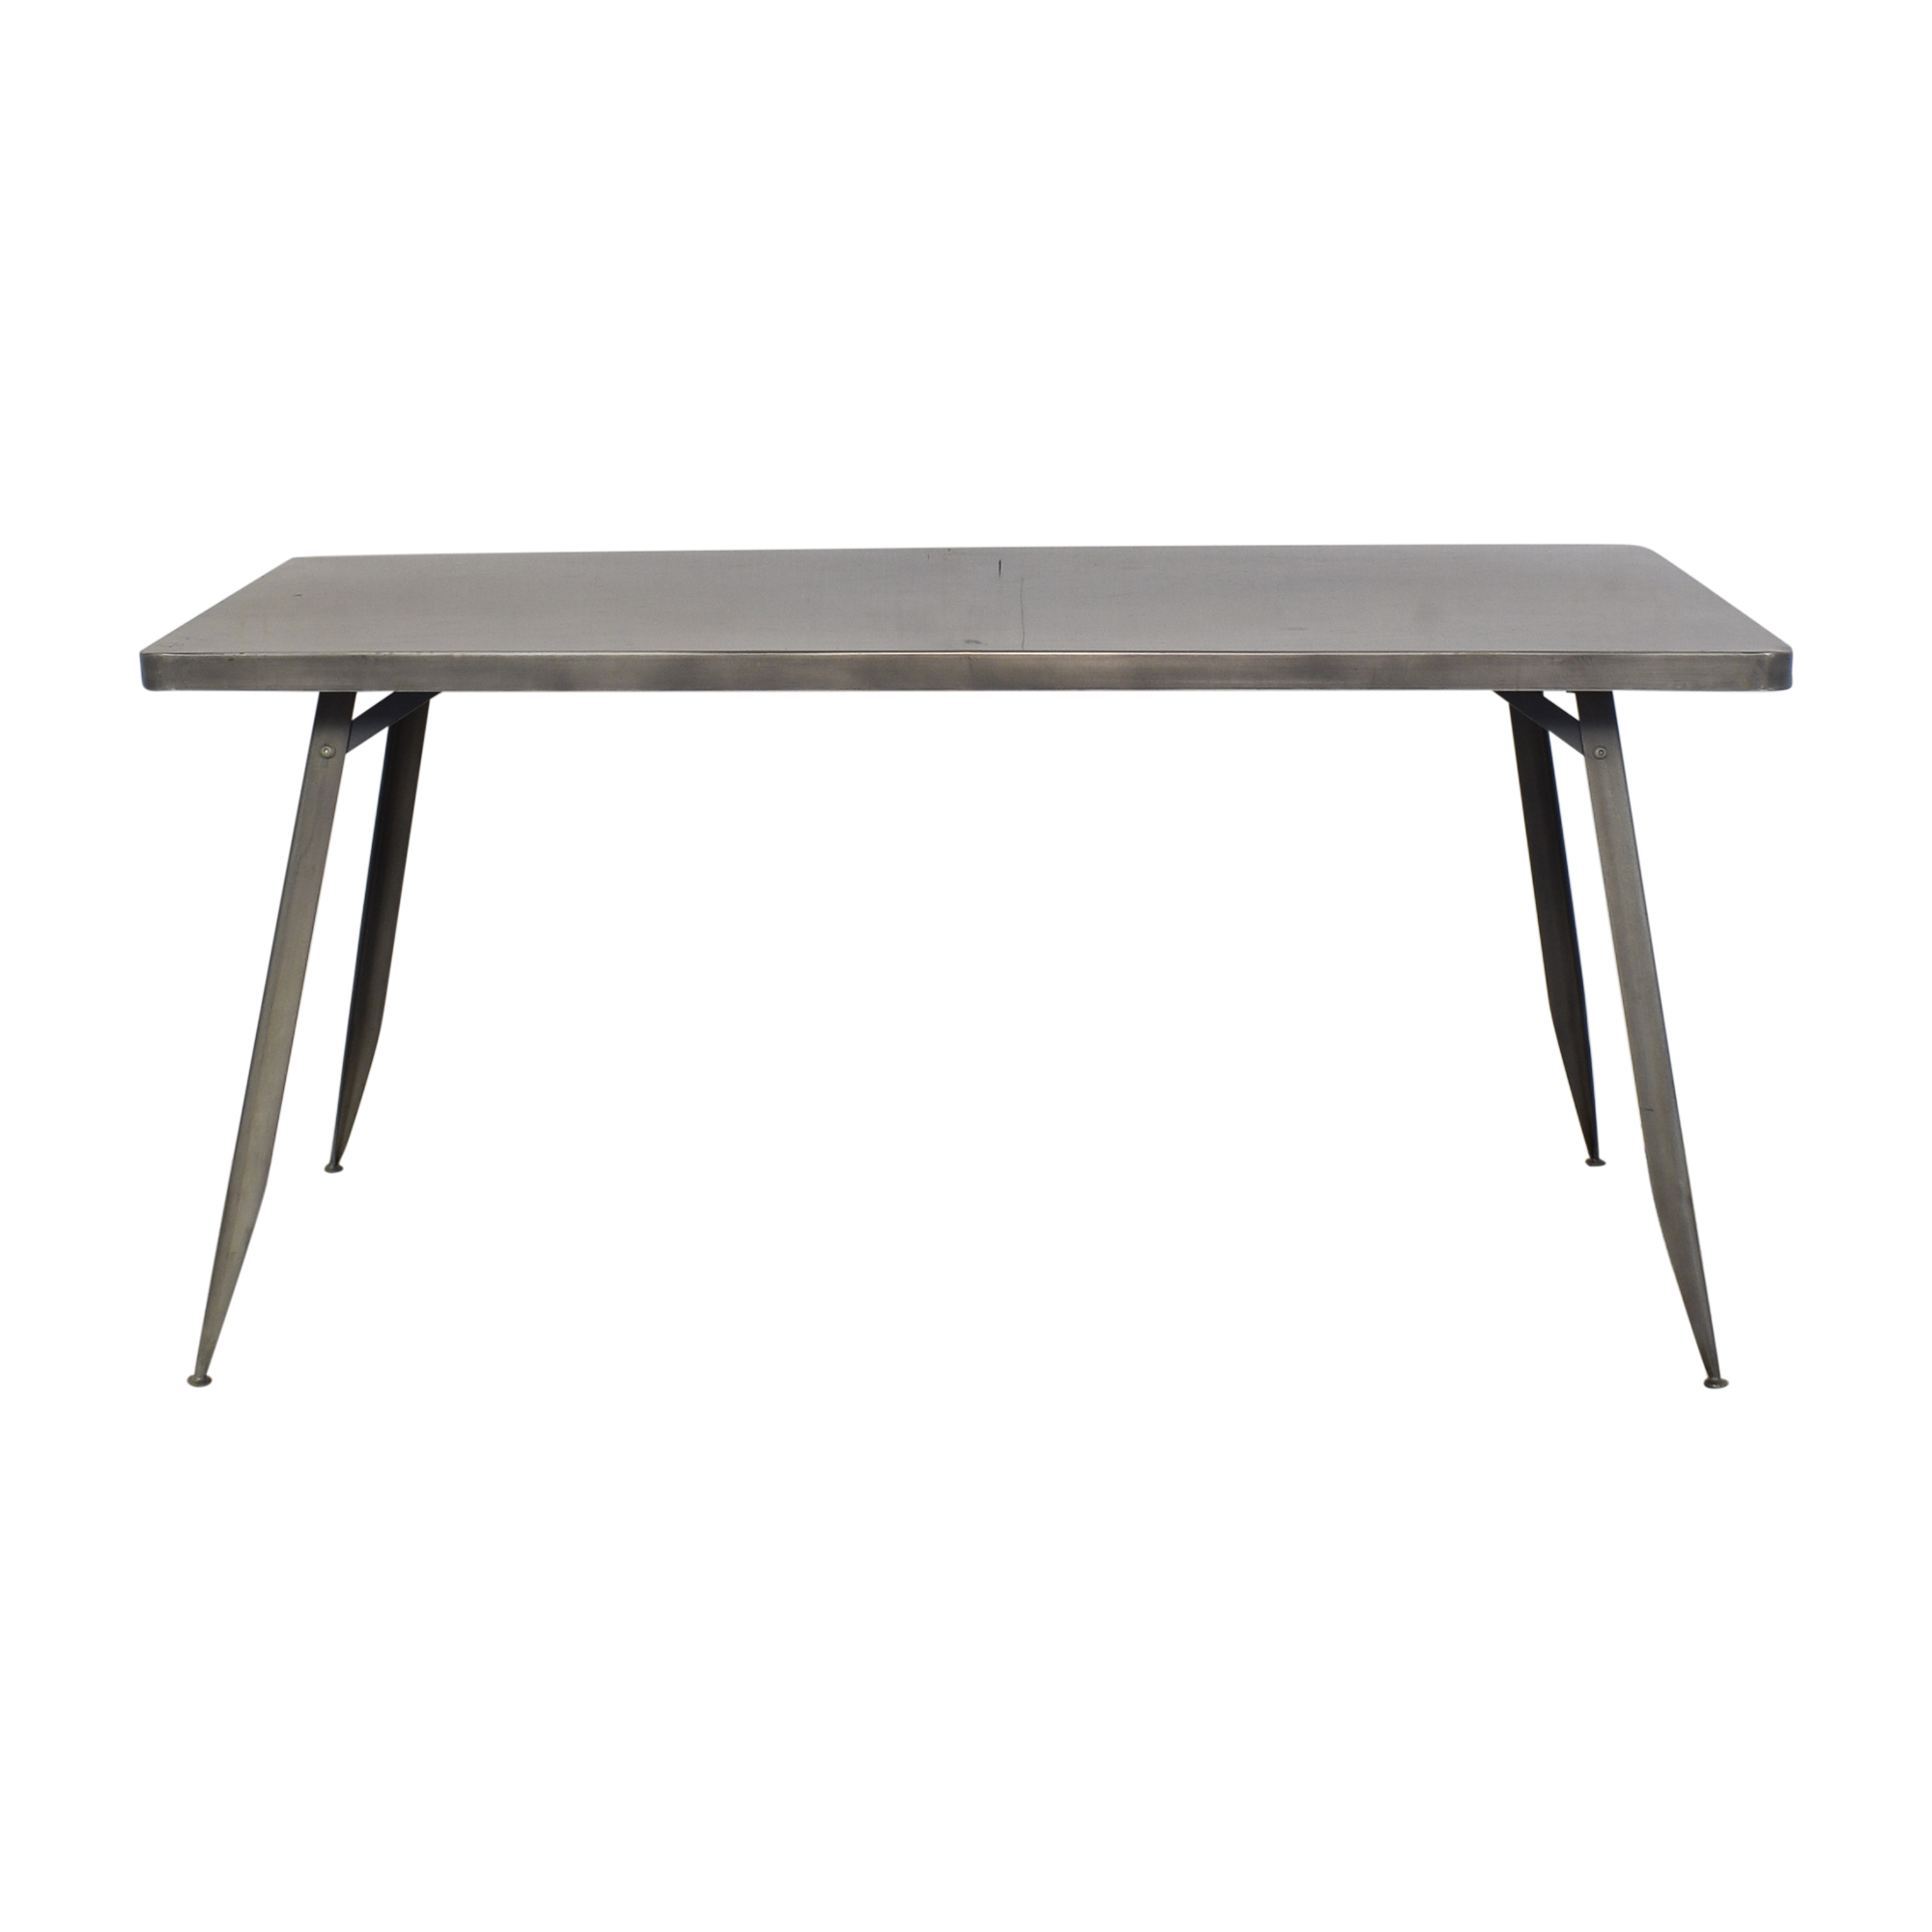 CB2 CB2 Draught Dining Table ma